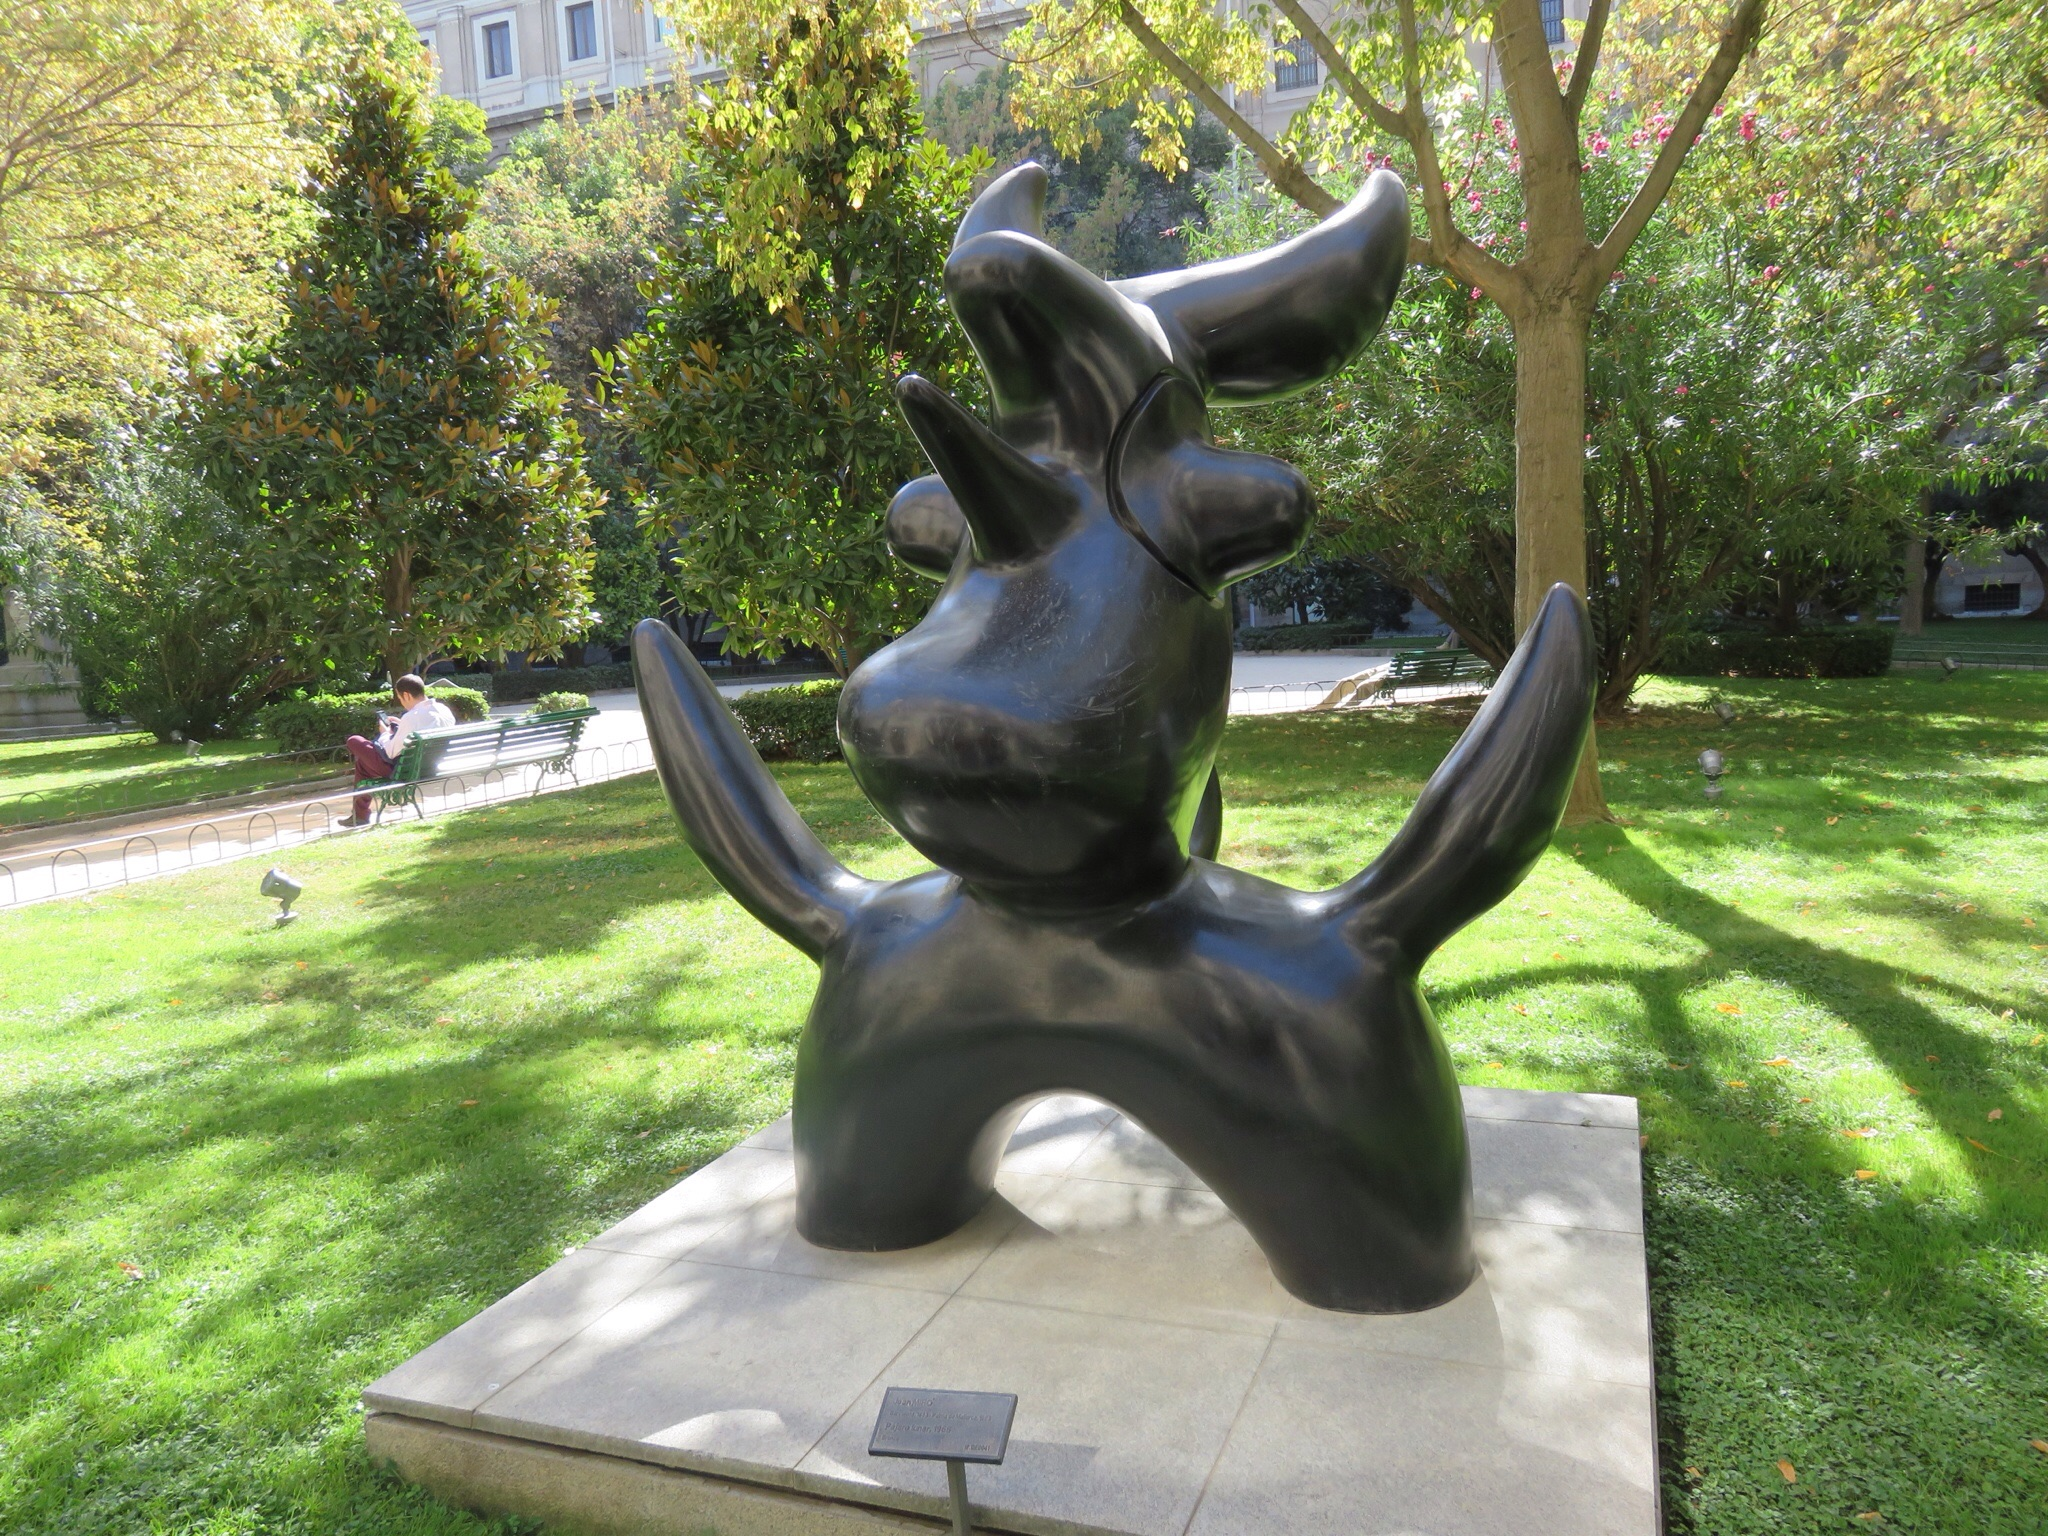 Sculpture at the Centro de Arte Reina Sofia - modern art museum